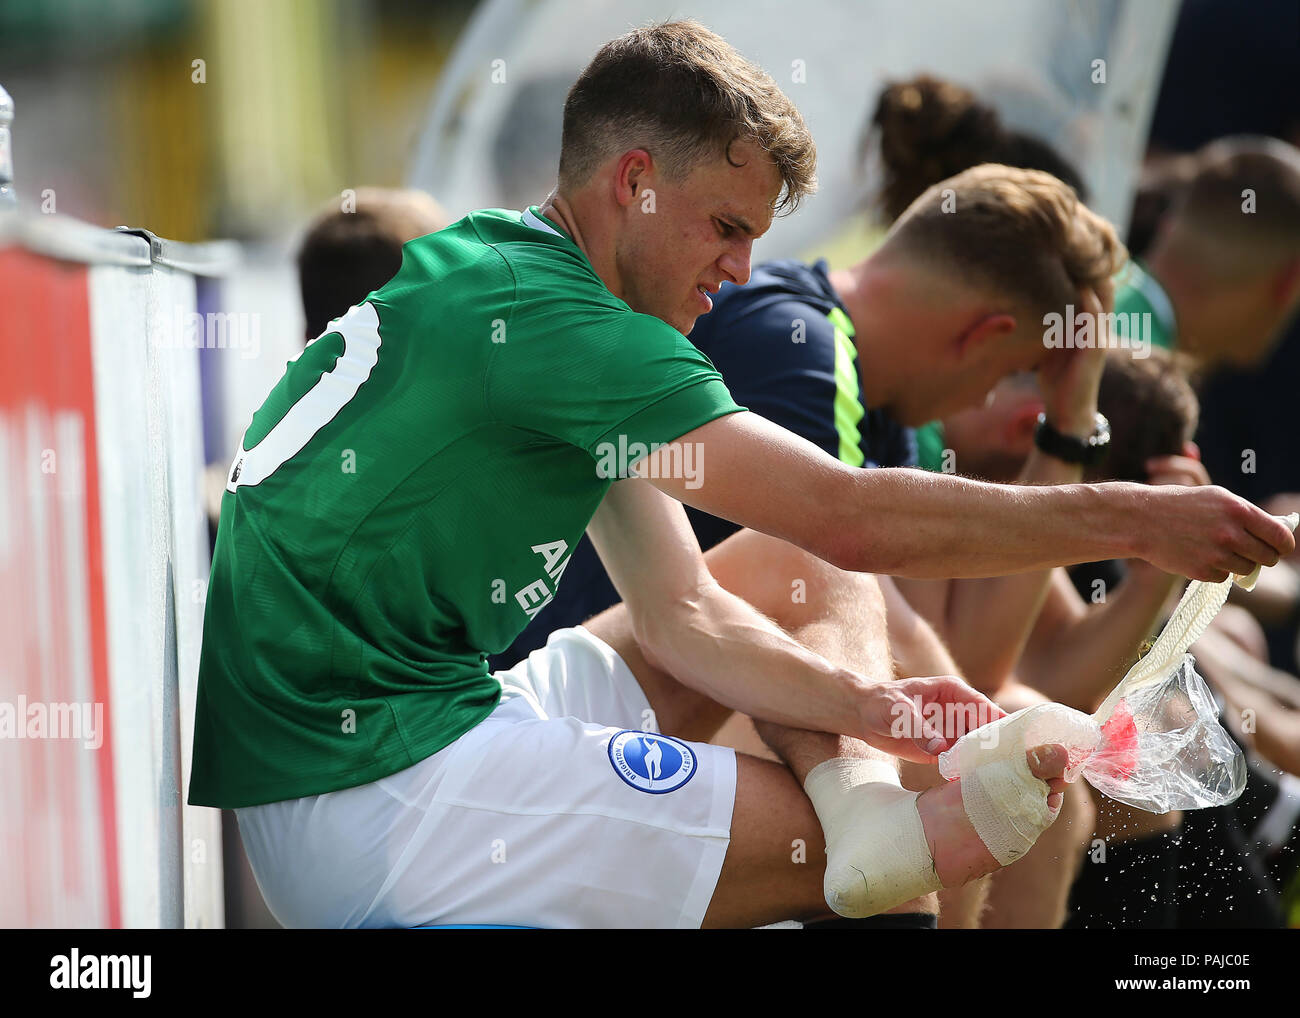 Brighton and Hove Albion'ss Solly March takes an ice pack of his left foot during a pre season friendly match at The Cherry Red Records Stadium, Kingston Upon Thames. PRESS ASSOCIATION Photo. Picture date: Saturday July 21, 2018. Photo credit should read: Mark Kerton/PA Wire. EDITORIAL USE ONLY No use with unauthorised audio, video, data, fixture lists, club/league logos or 'live' services. Online in-match use limited to 75 images, no video emulation. No use in betting, games or single club/league/player publications. - Stock Image